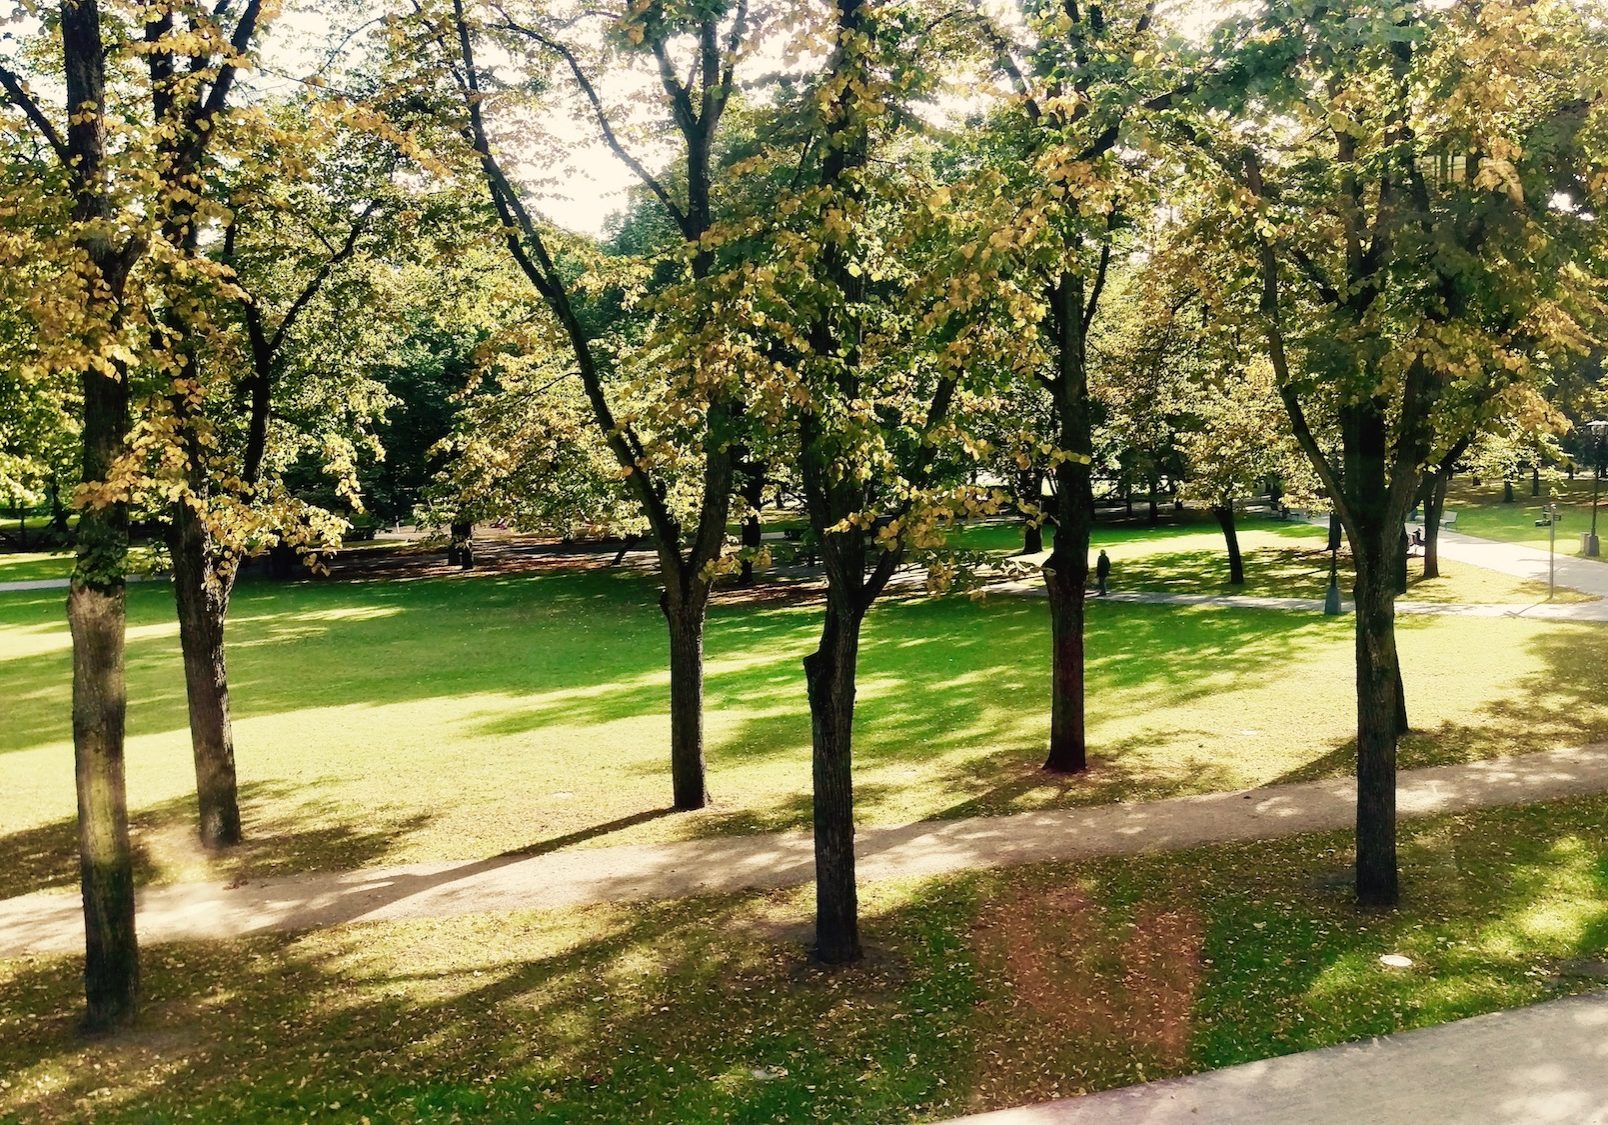 Green zones - Esplanade Park is a centrally located park which is almost 9 ha large